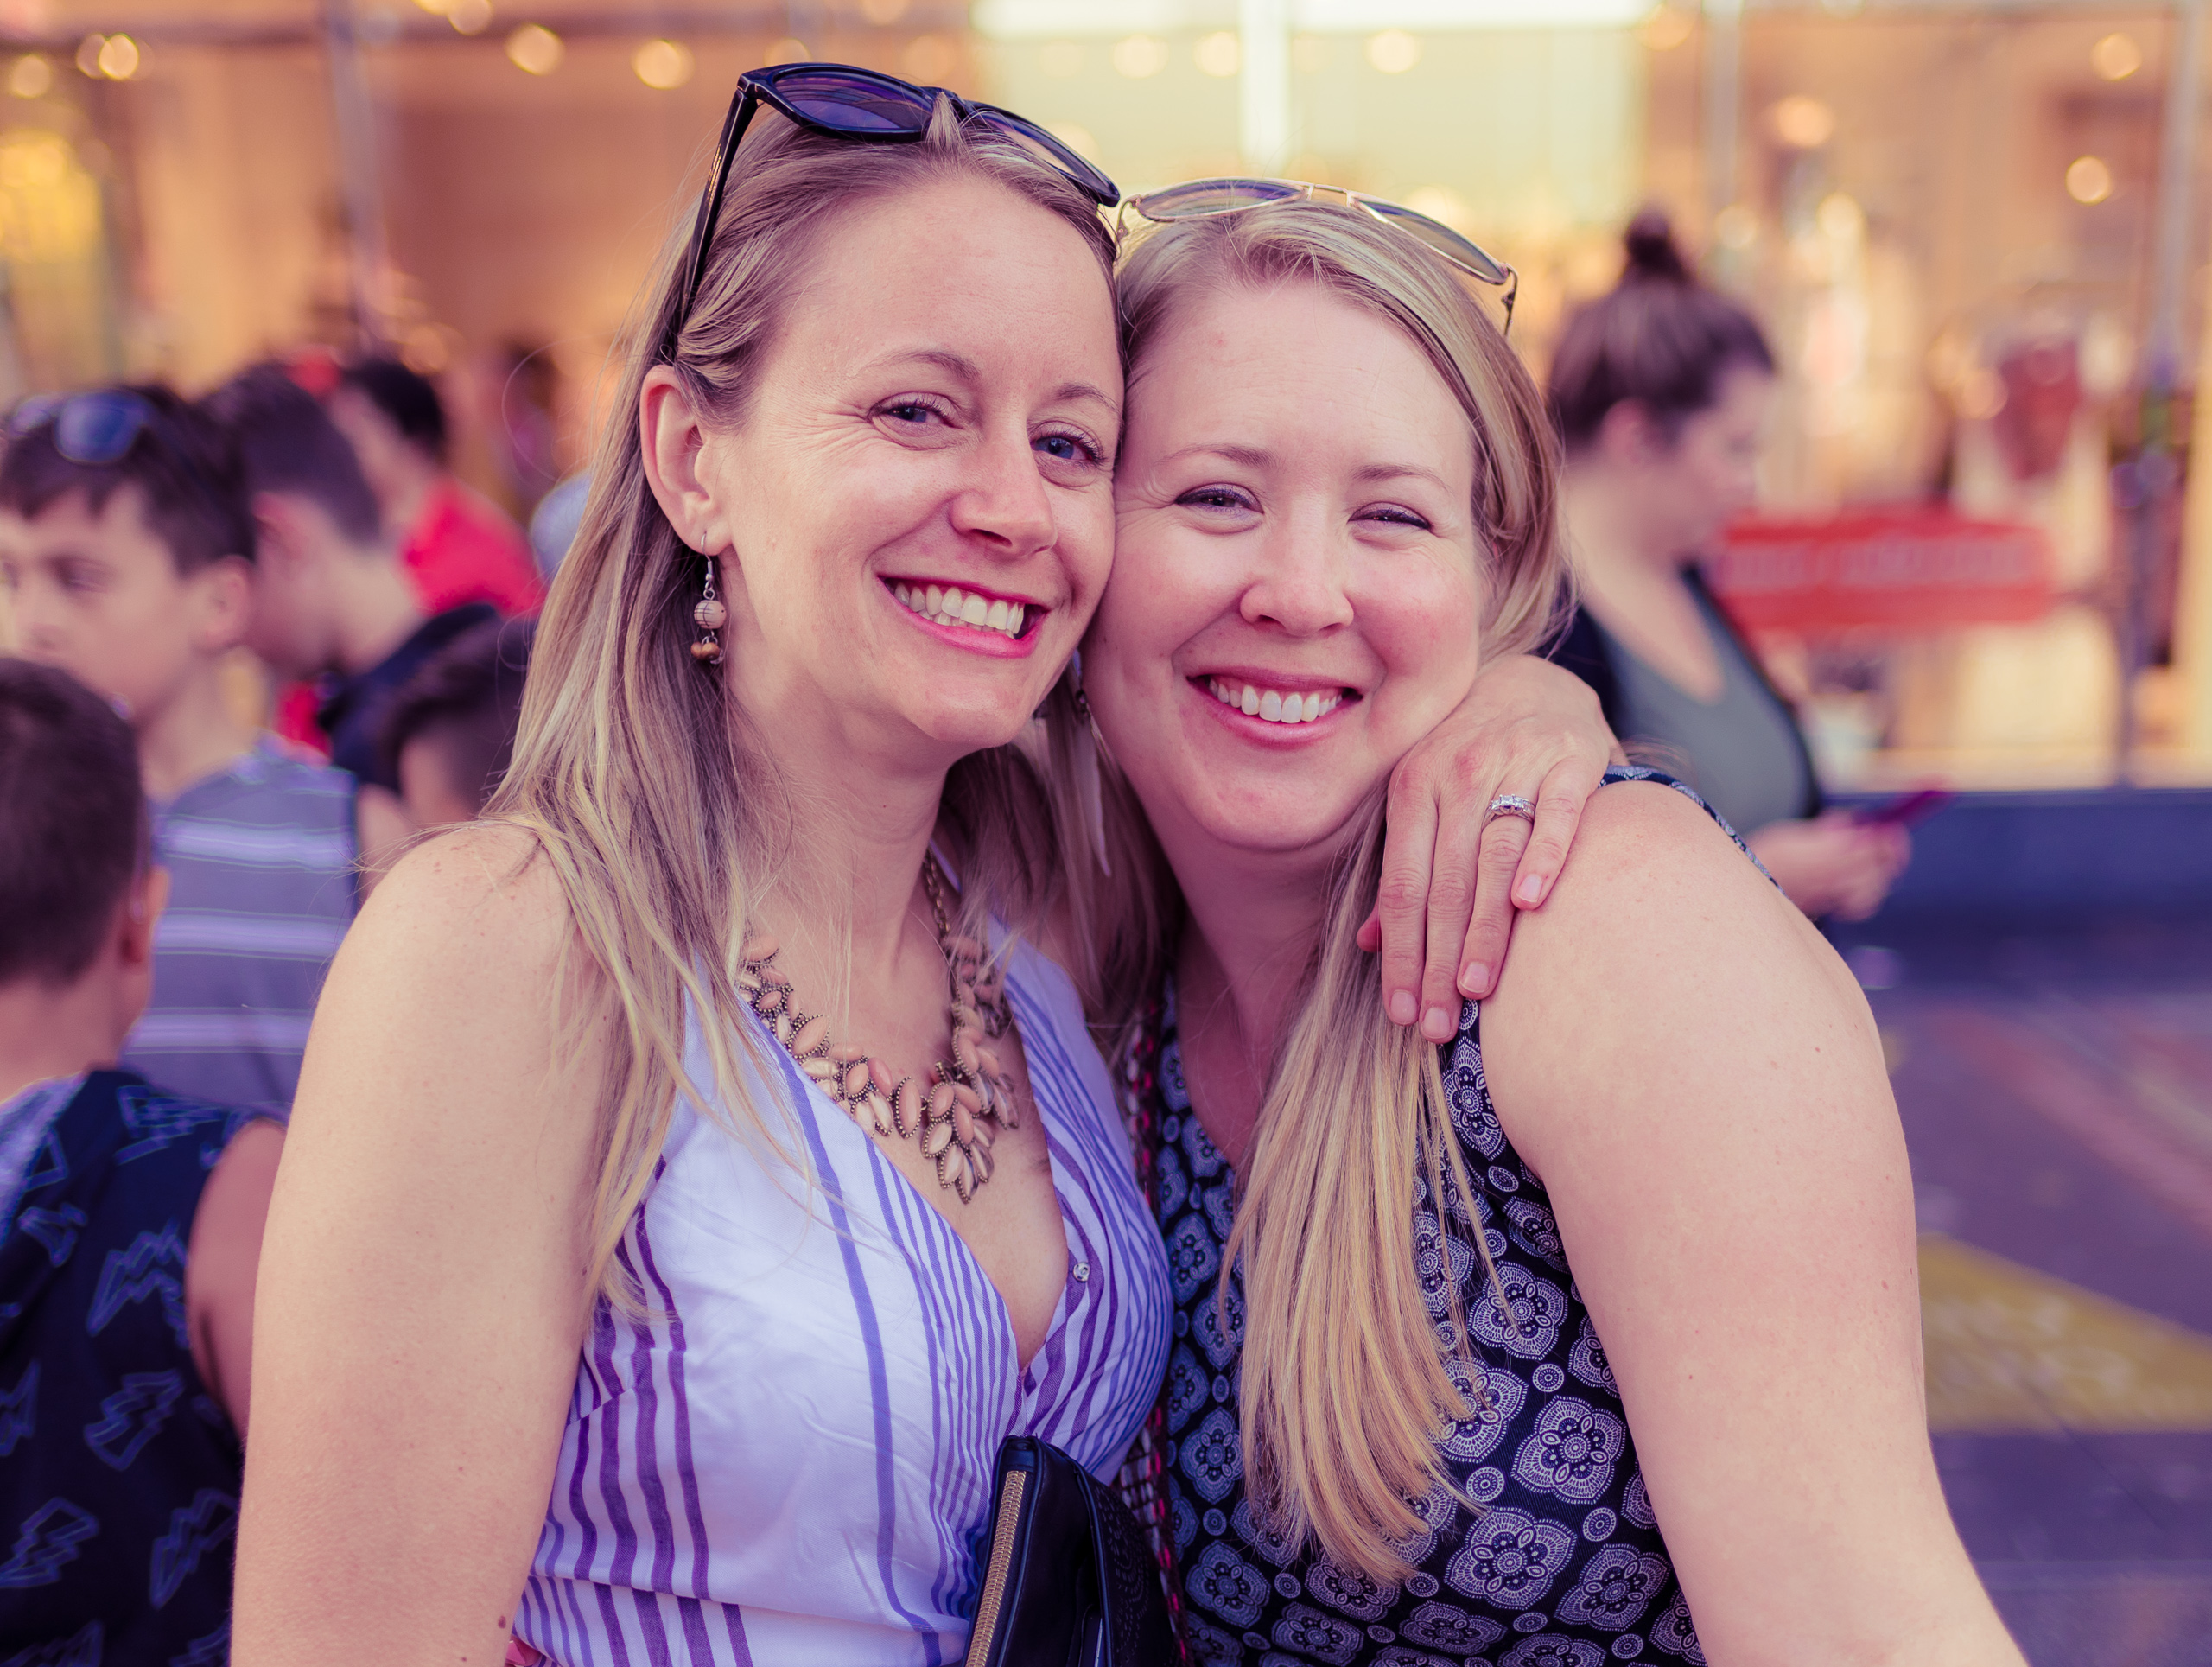 two blonde, fair complected, women embrace and smile in the afternoon glow